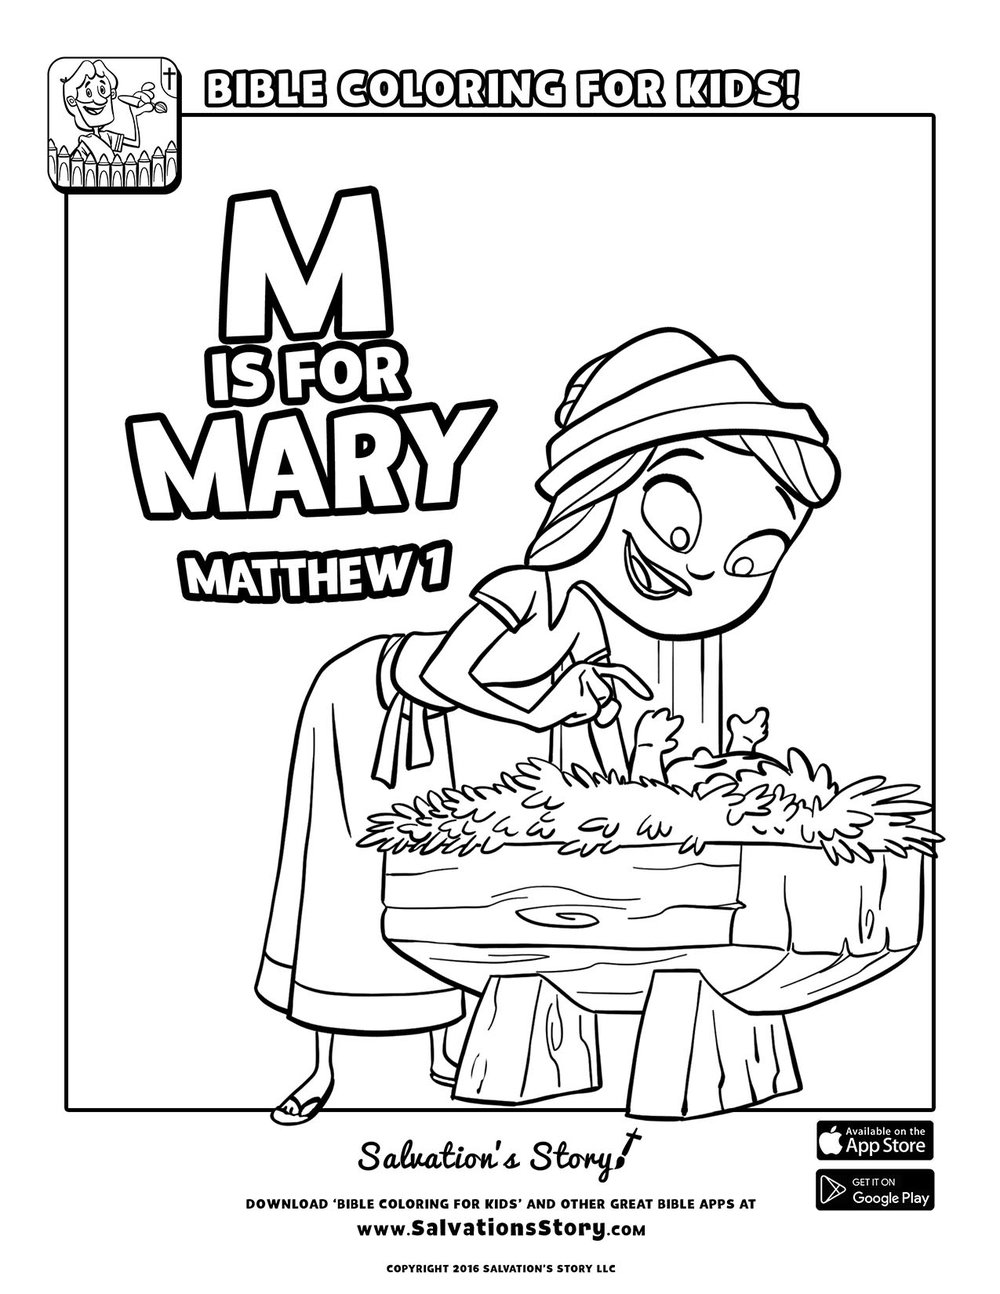 M is for Mary.jpg